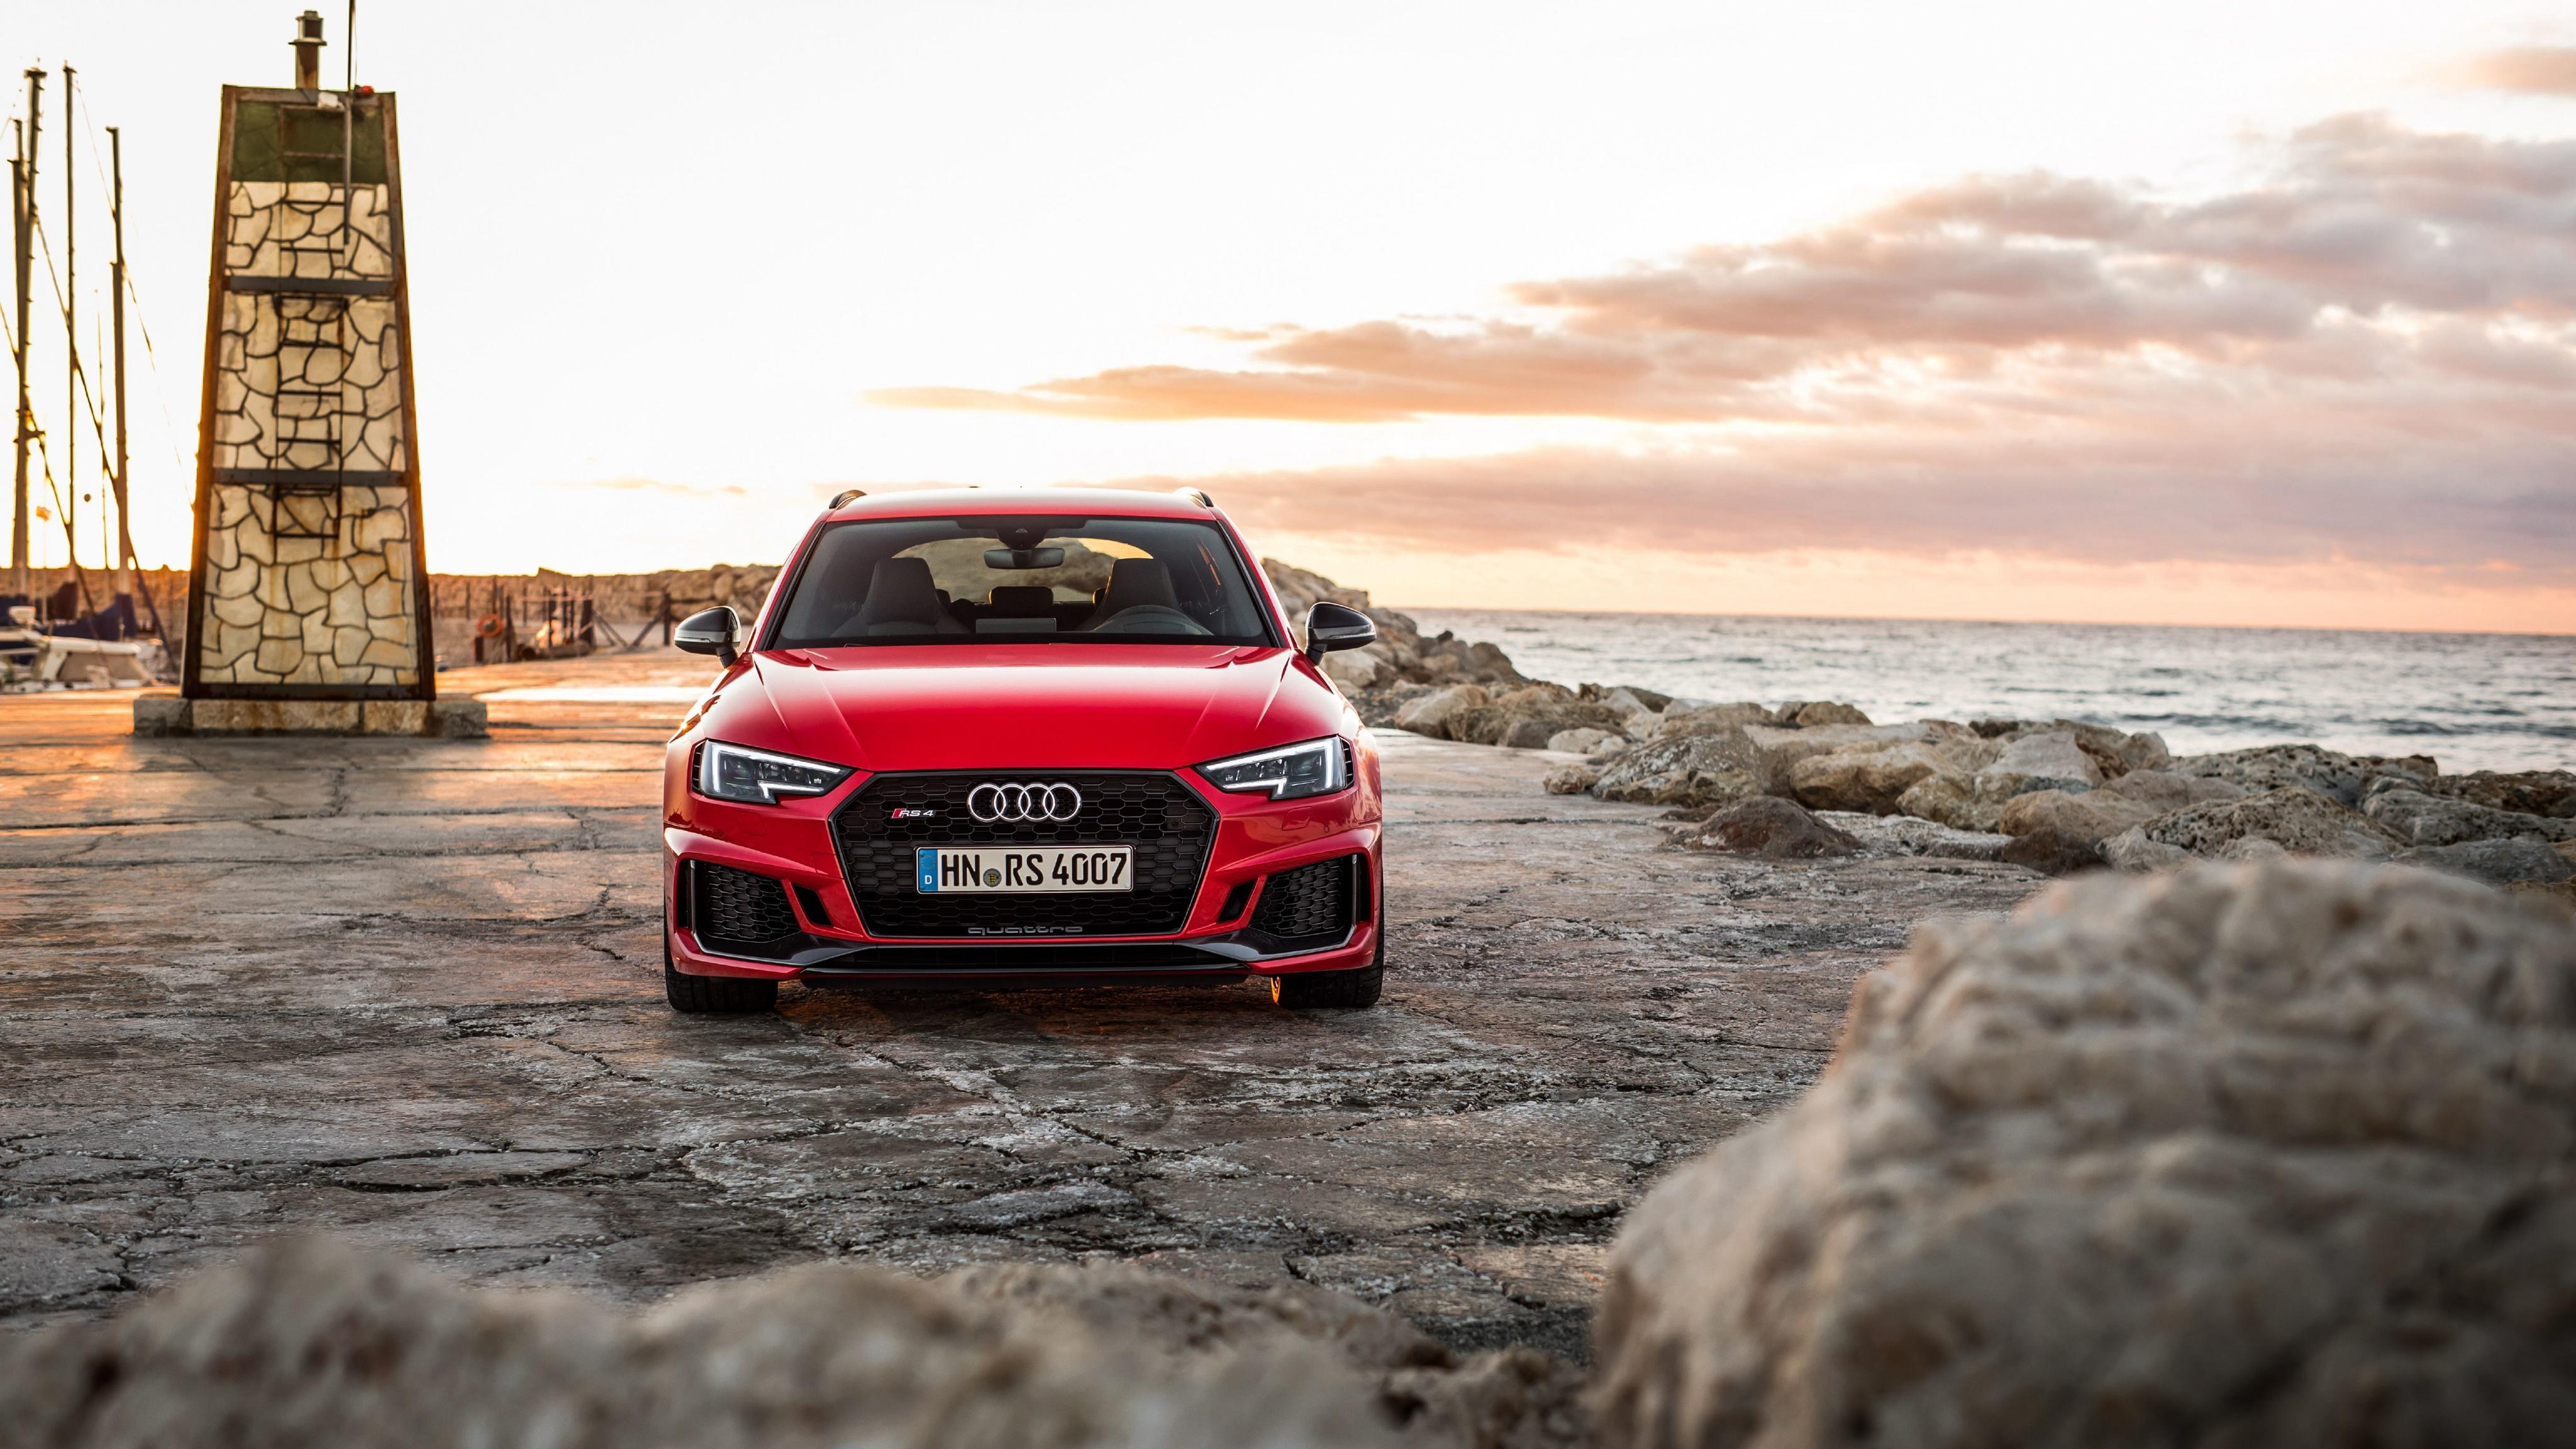 Wallpapers Audi Estate car 2018 RS4 Avant Red auto Front 4096x2304